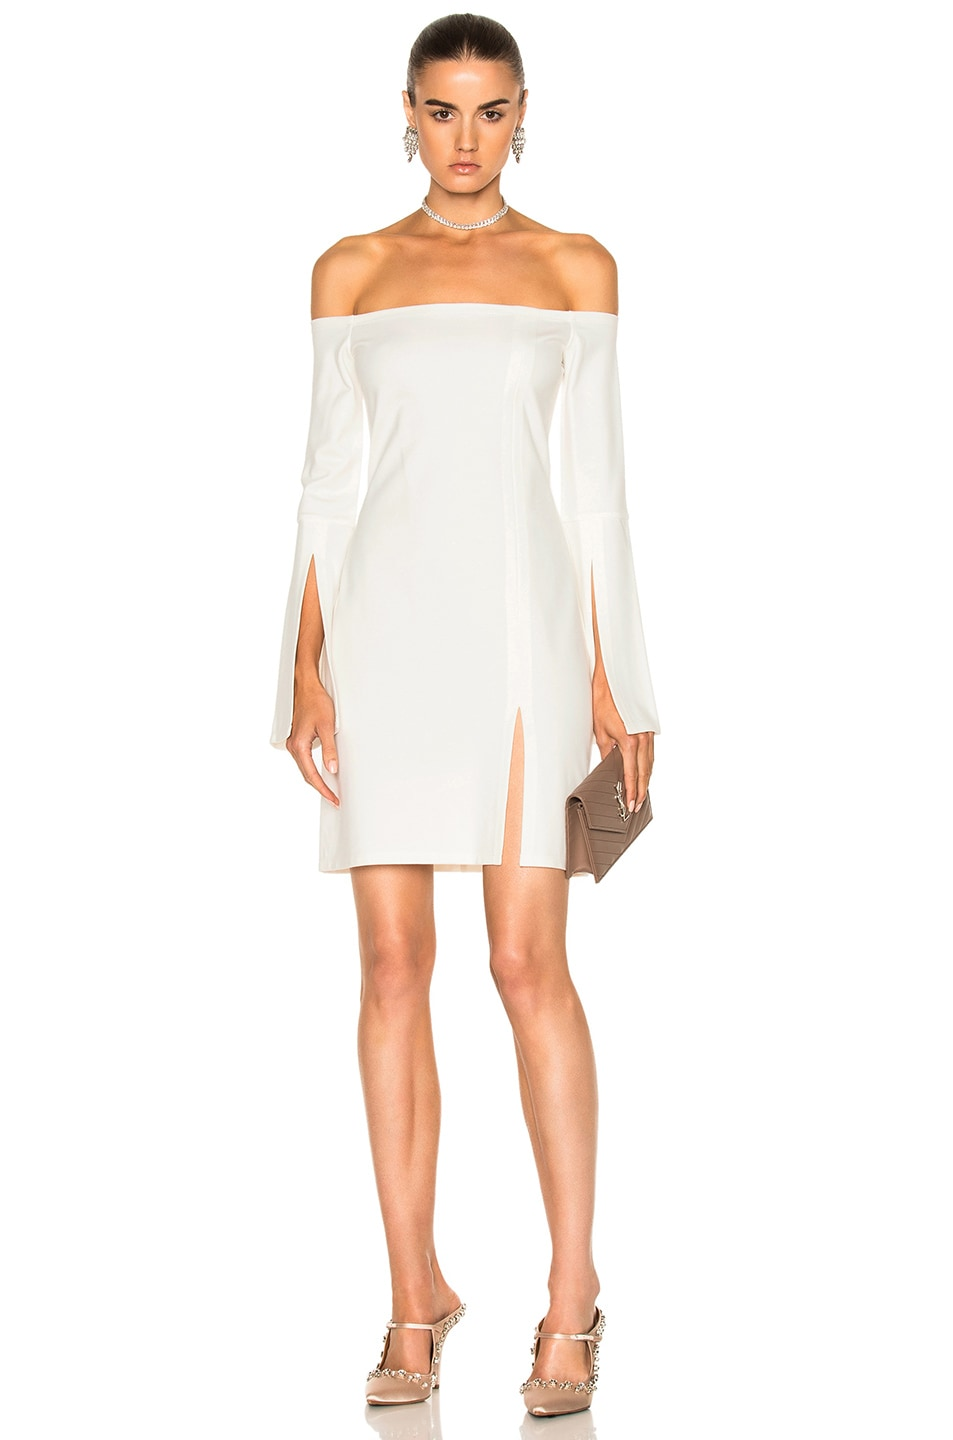 Image 1 of Alexis Sterre Dress in White